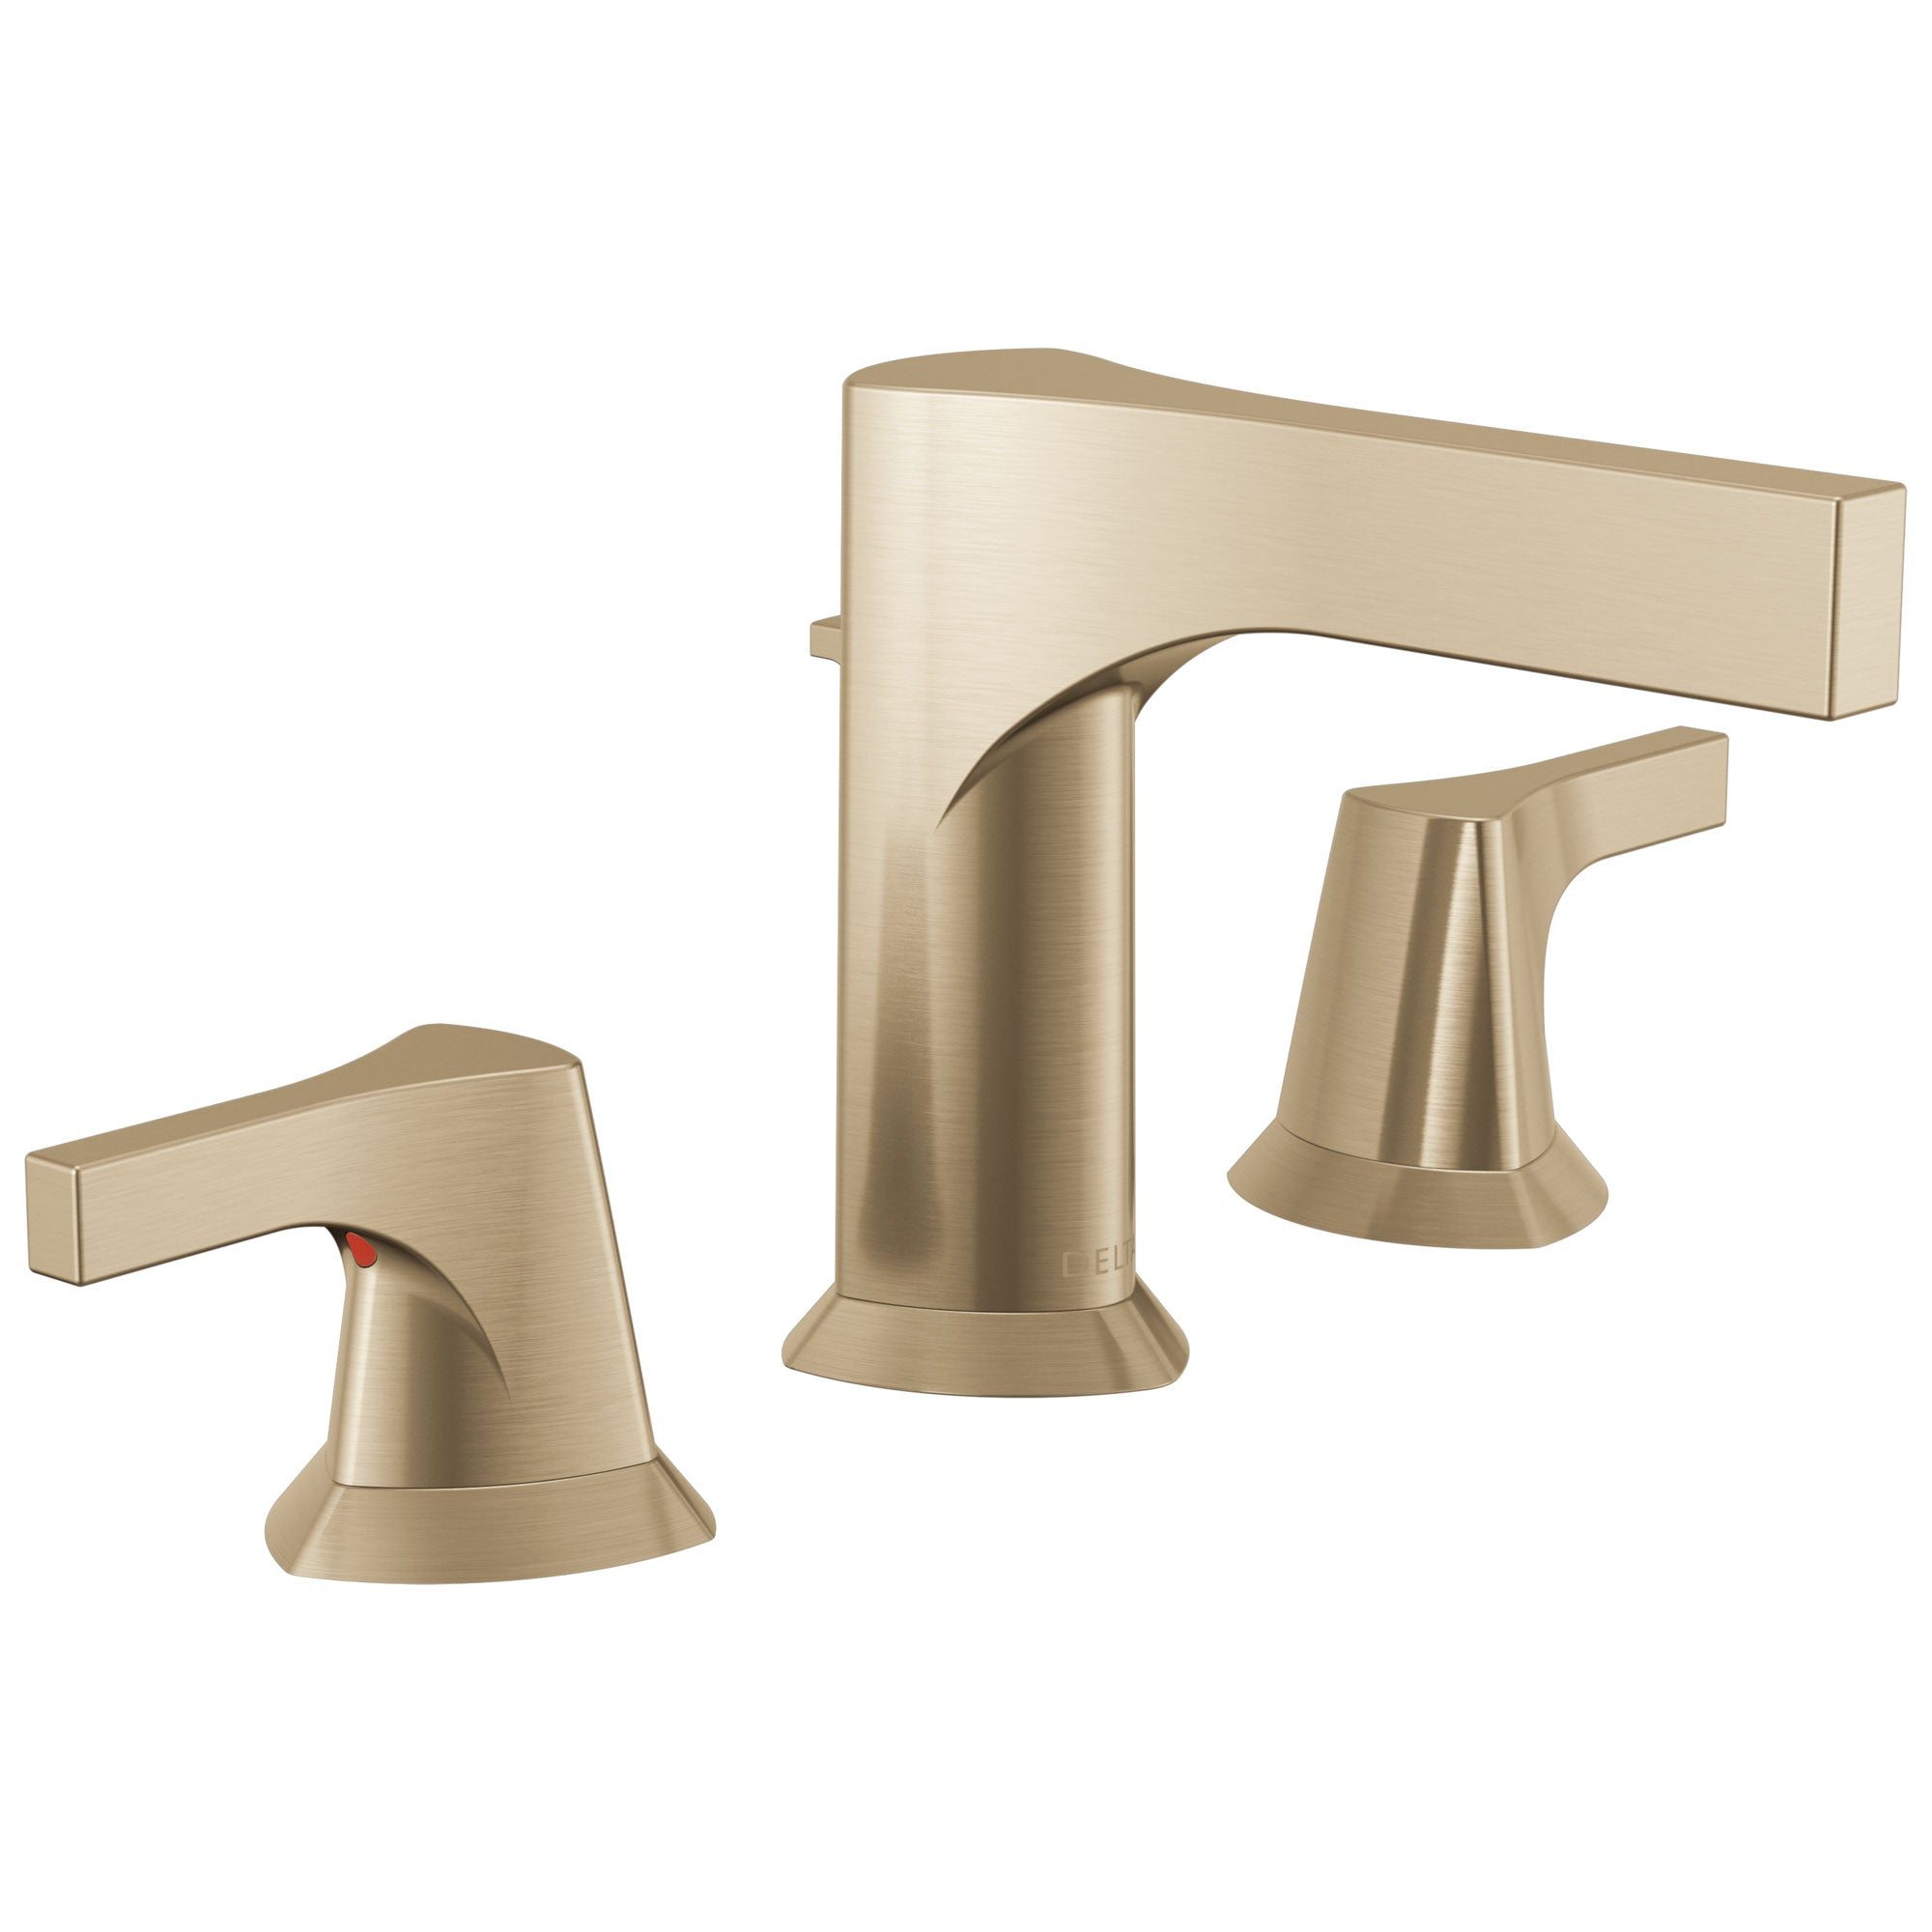 Delta Zura Champagne Bronze Finish Two Handle Widespread Bathroom Faucet with Drain D3574CZMPUDST